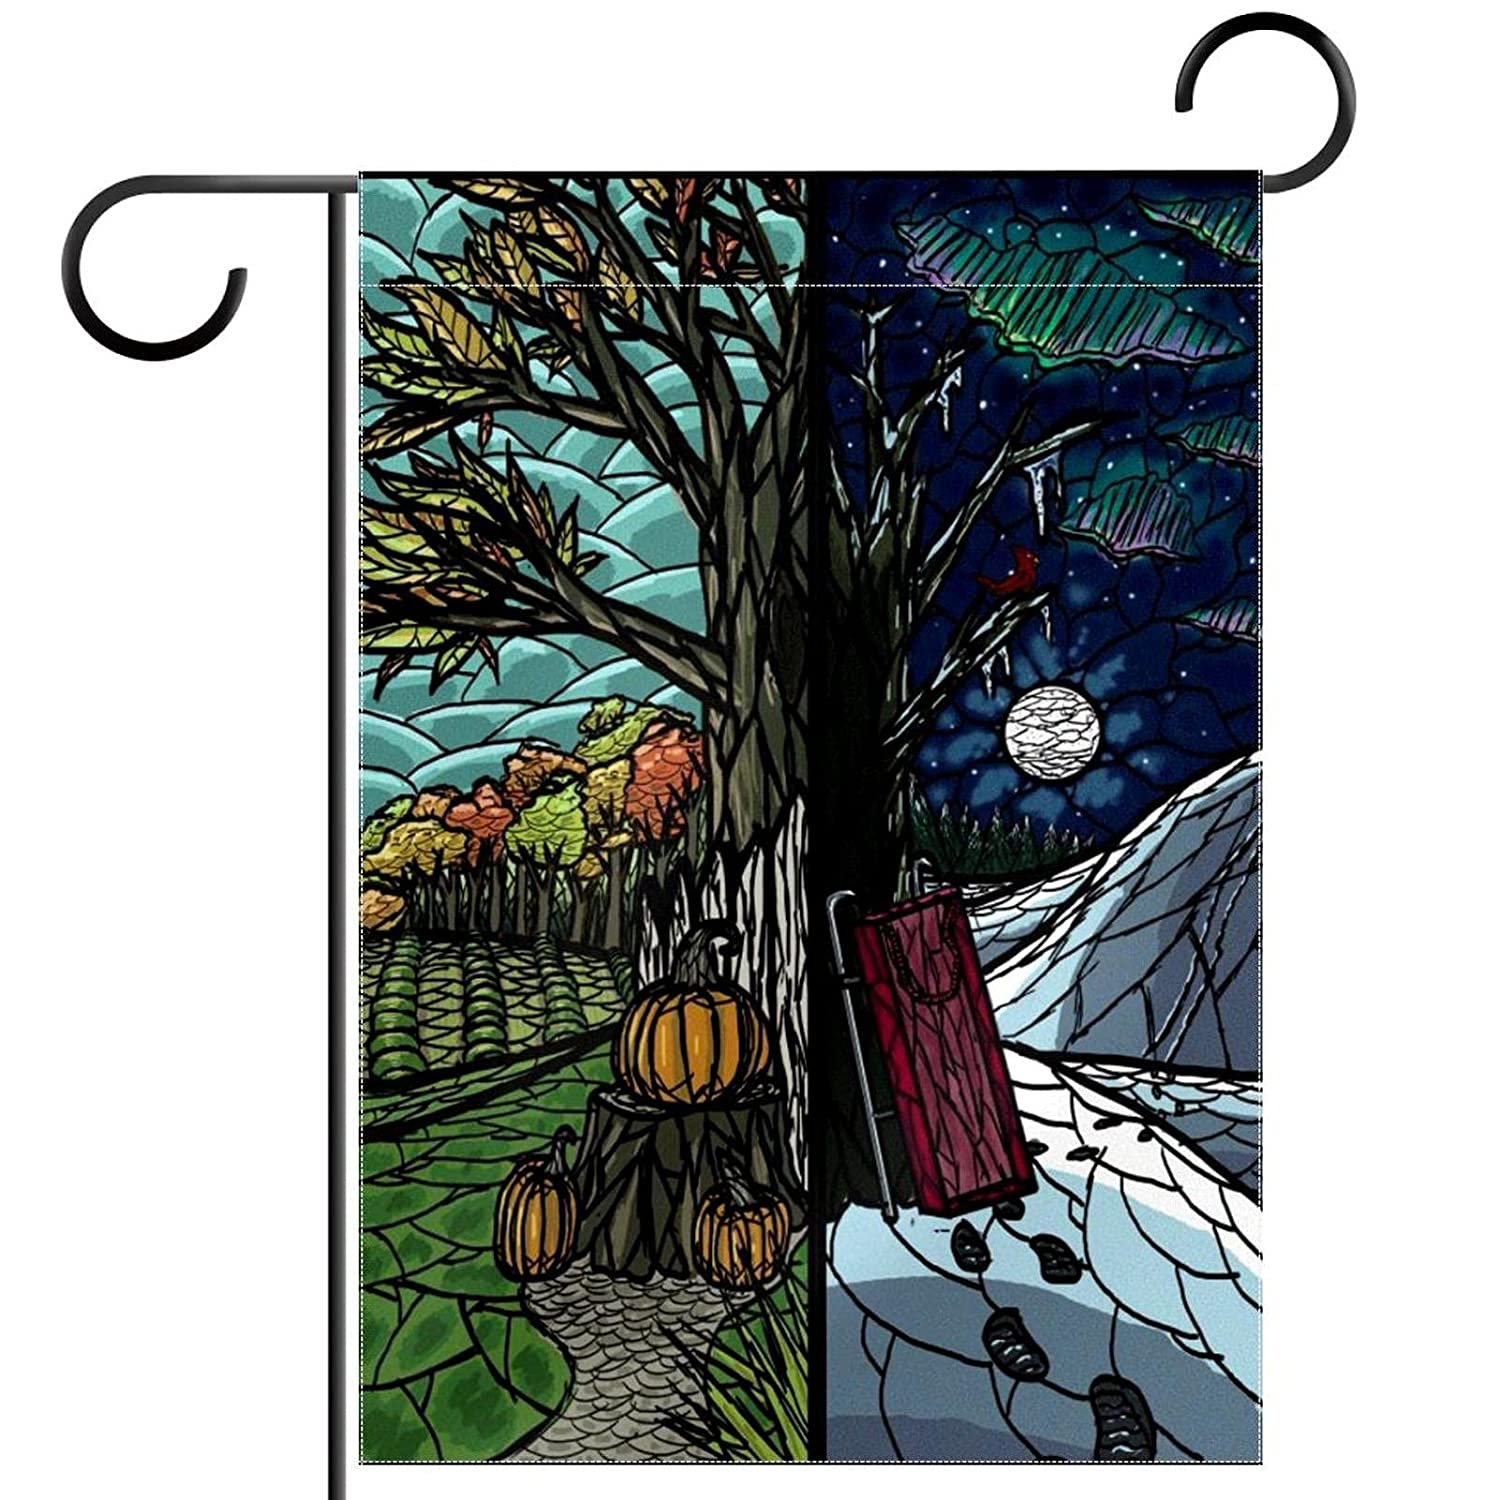 Garden Flag Four Seasons Landscape 12×18 Inch Double Sided Design Decorative Yard Banner Garden Flag Holiday Flag for Party Home Outdoor Decoration